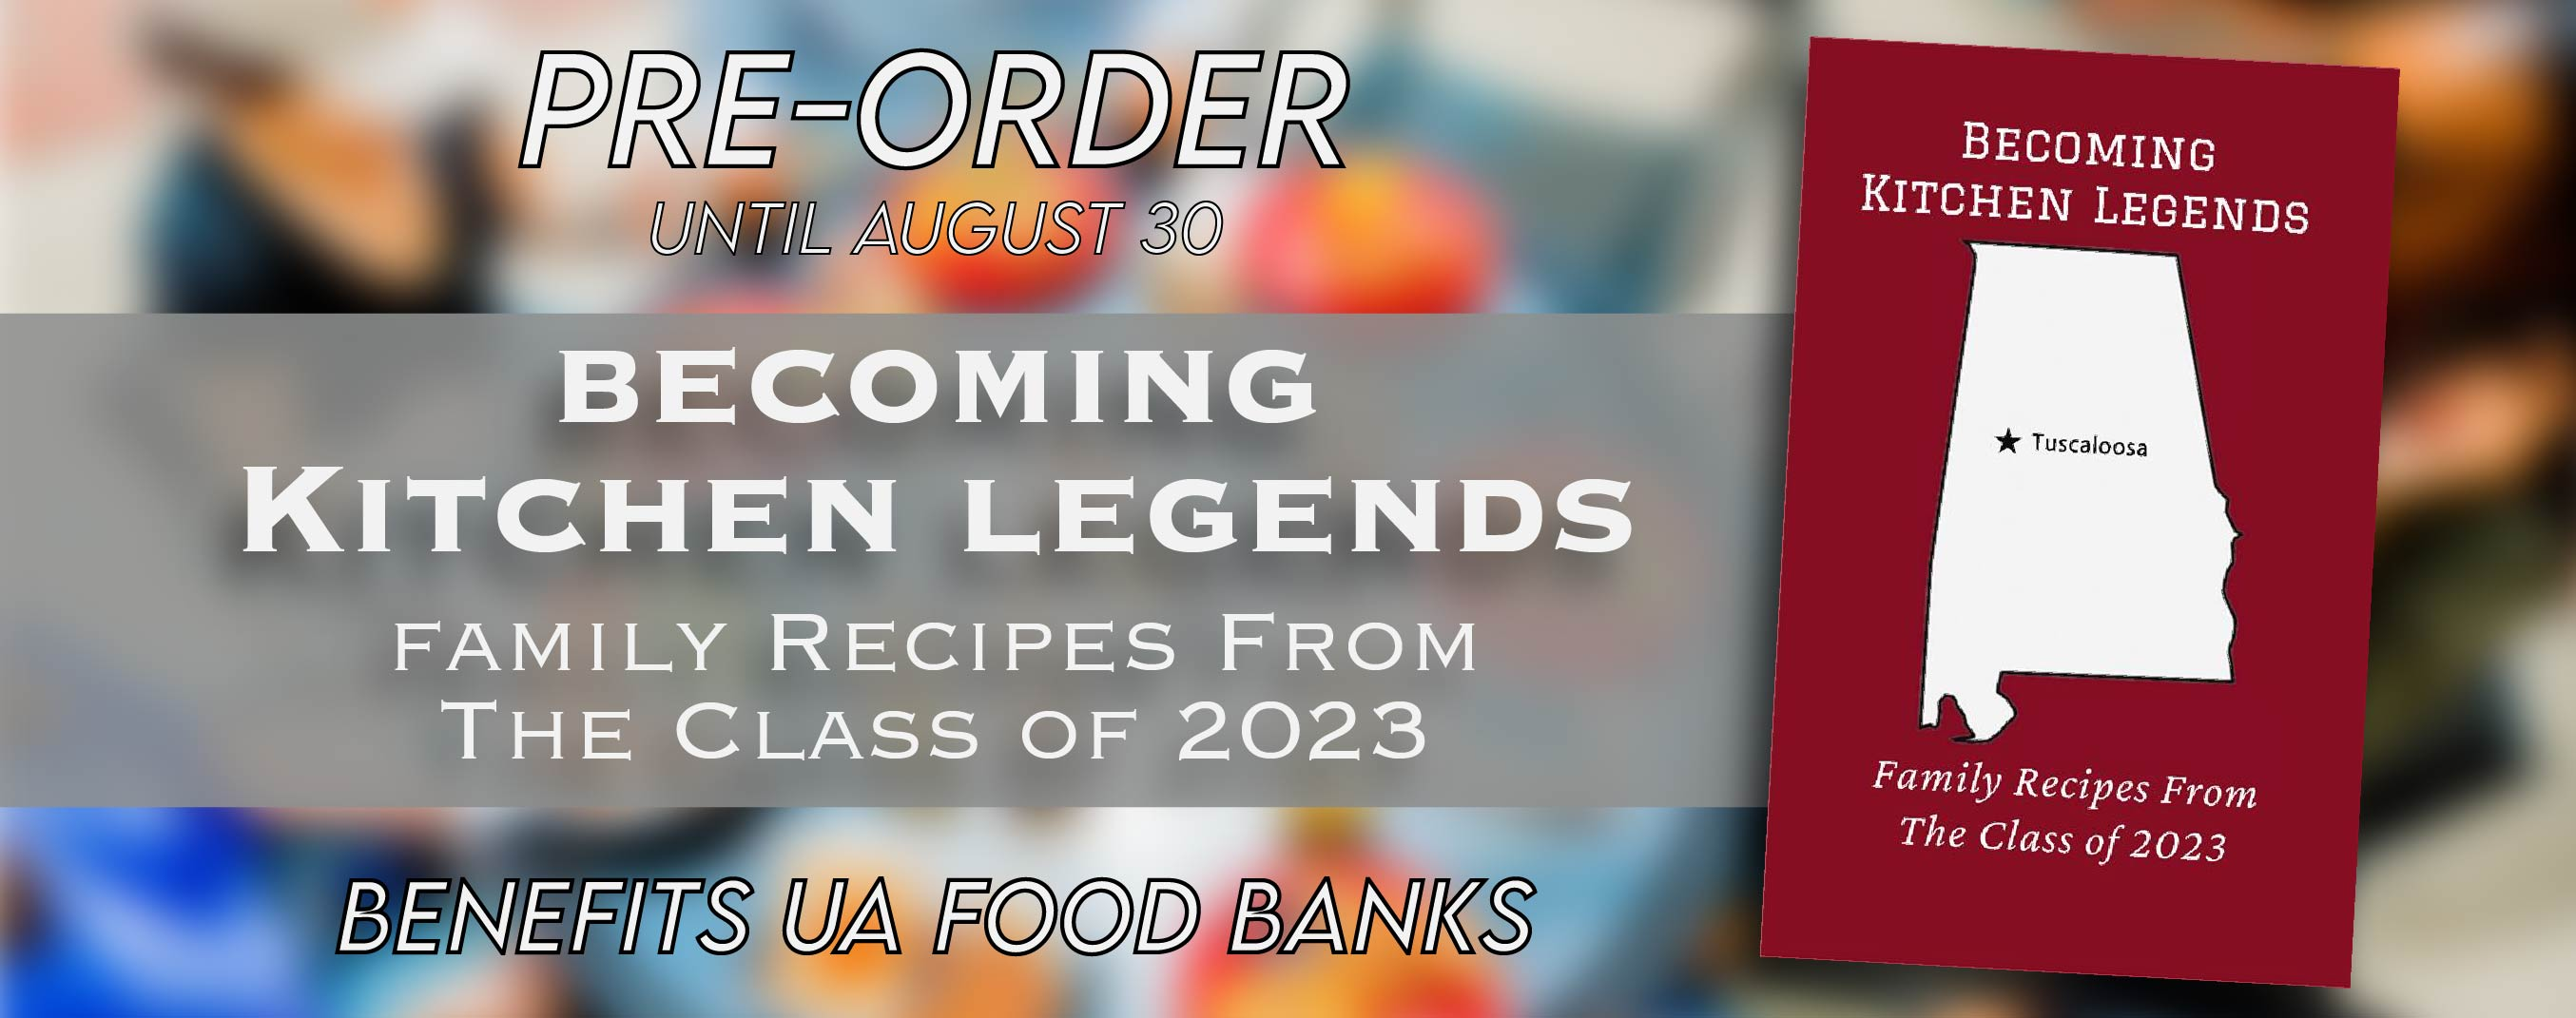 Pre-order Becoming Kitchen Legends.  Taking orders through August.  Will ship in September